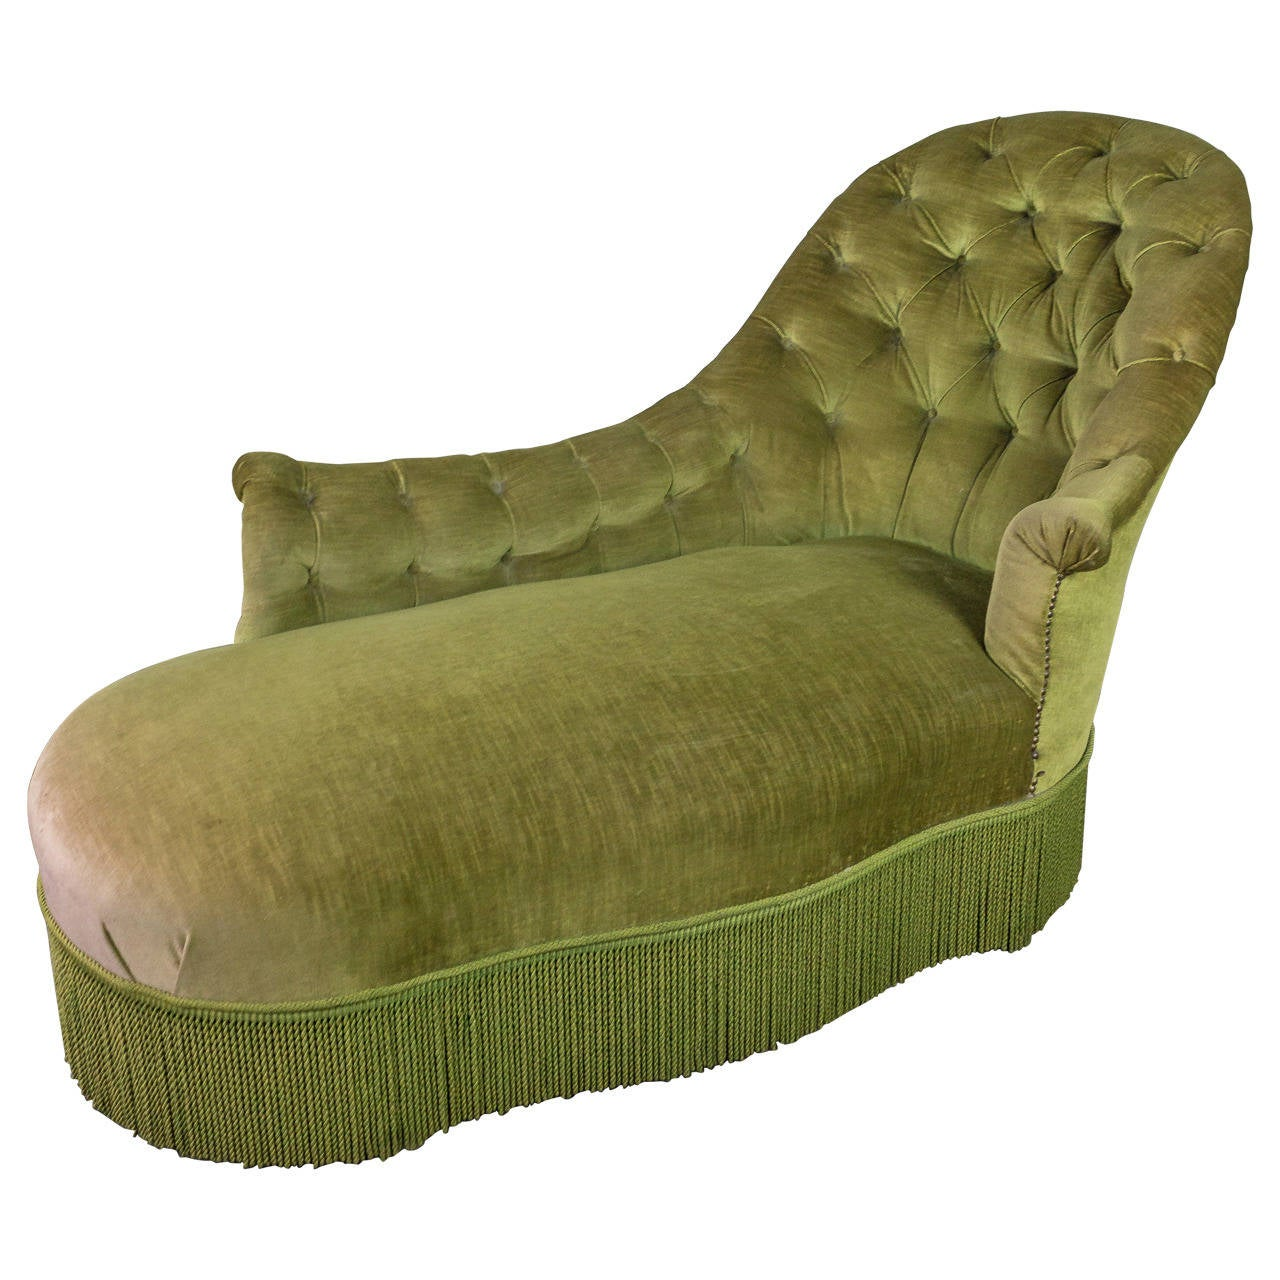 Tufted asymmetrical green chaise longue for sale at 1stdibs for Button tufted velvet chaise settee green